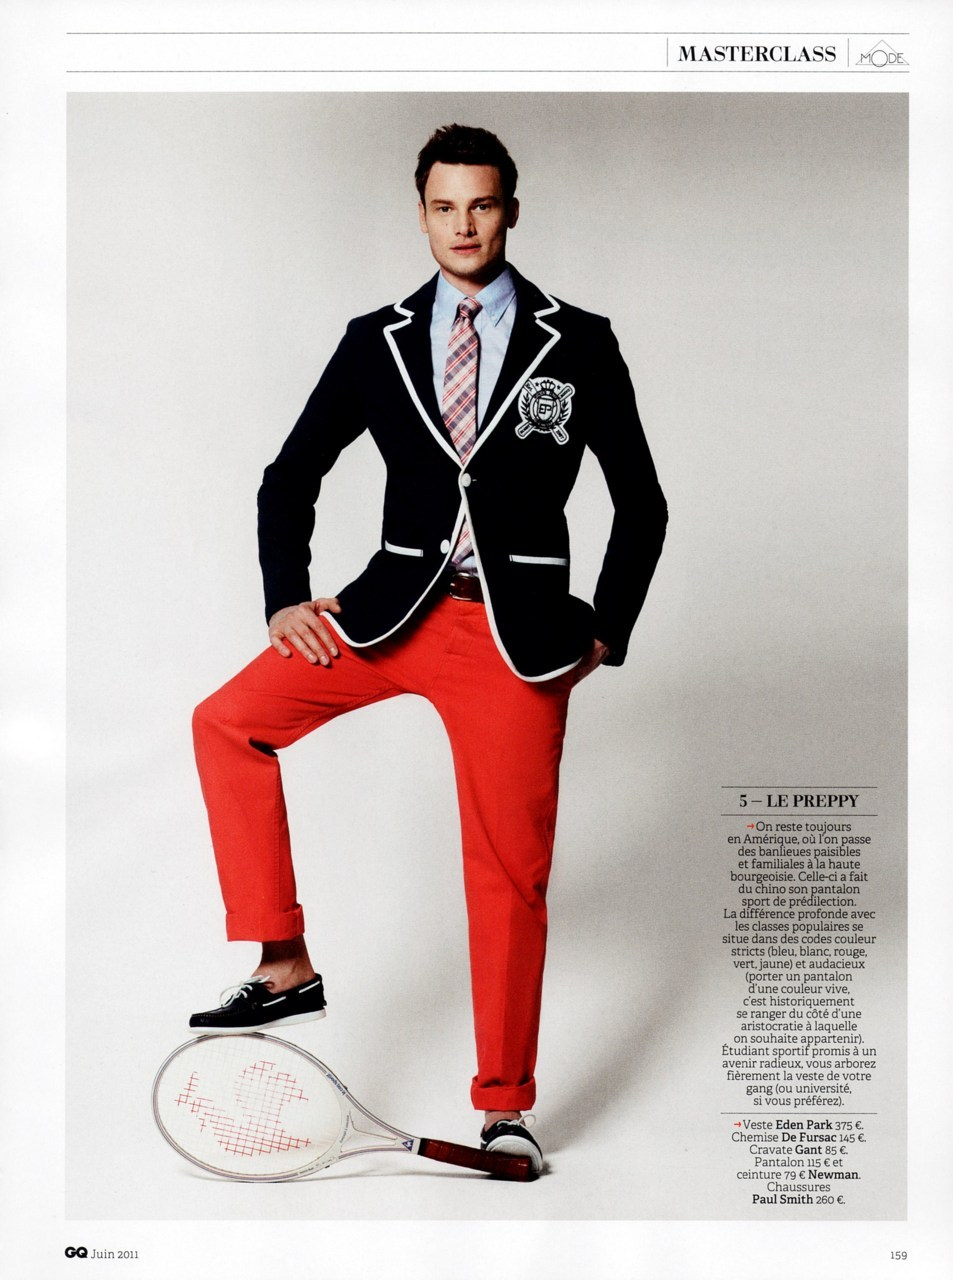 GQ France - may 2011 - Le chino en 10 leçons (The chino in 10 lessons)